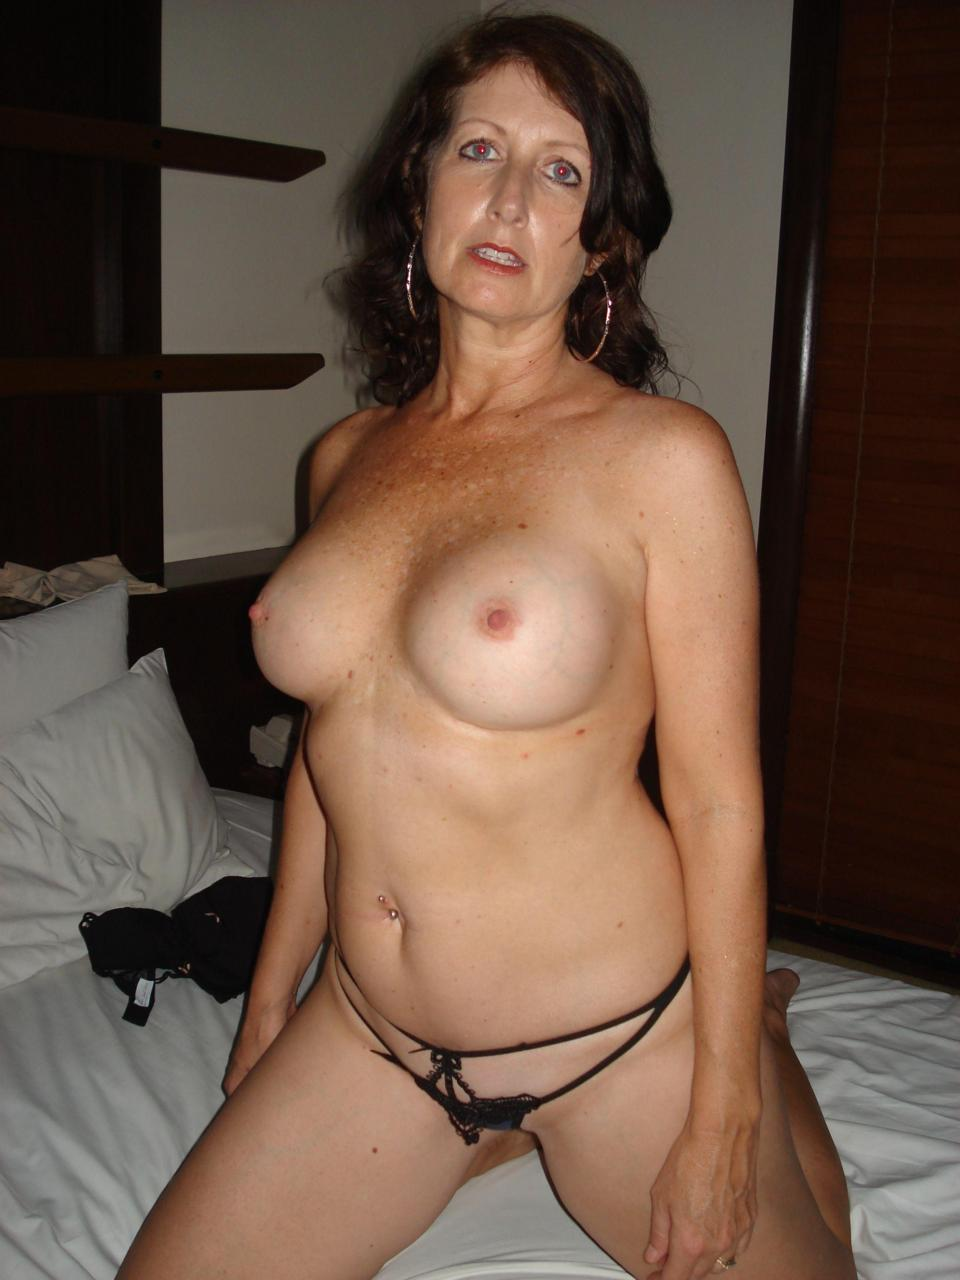 Hemmafru swinger privat